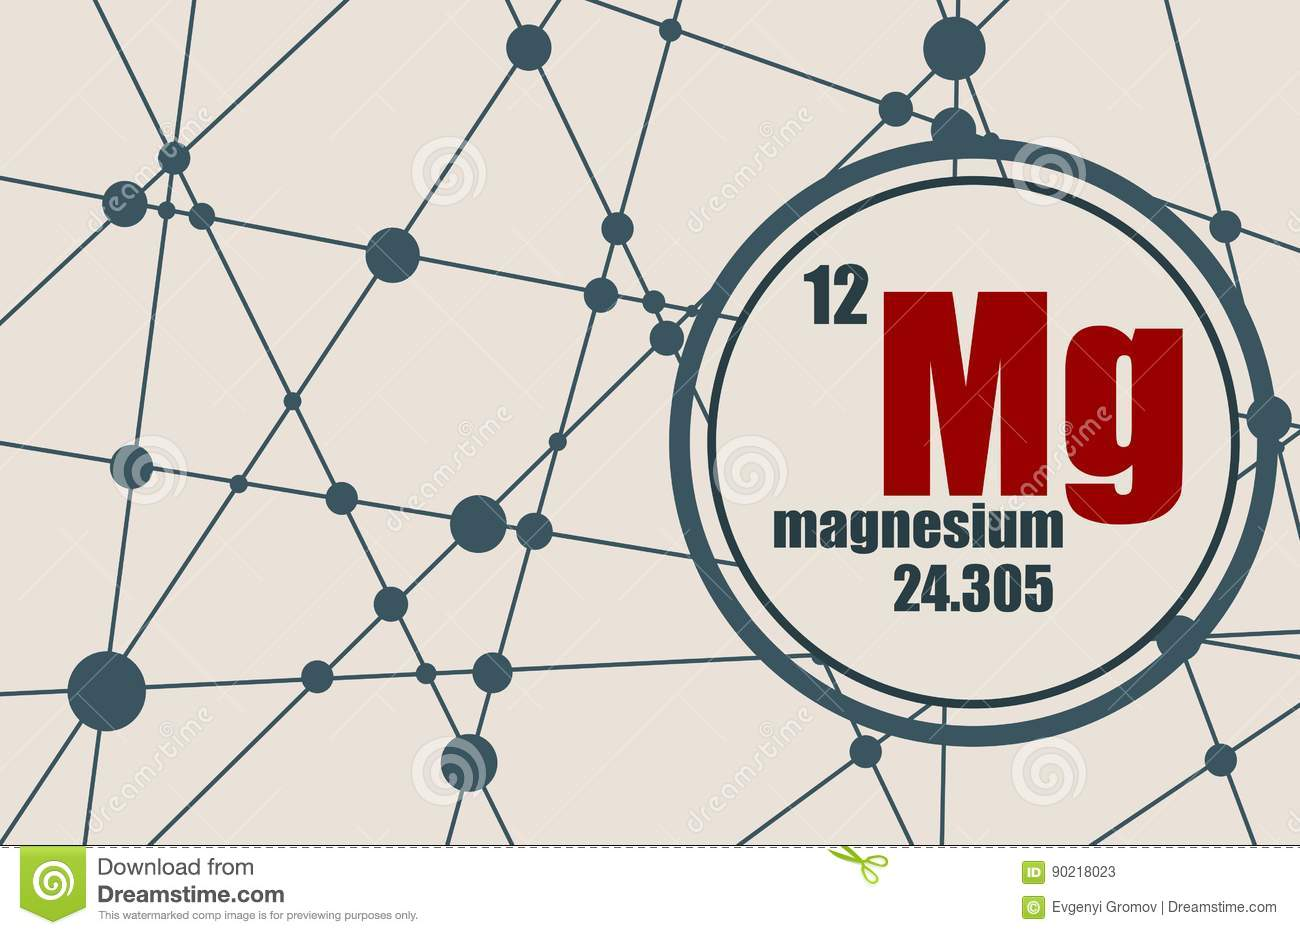 Magnesium chemical element stock vector illustration of atom download magnesium chemical element stock vector illustration of atom mass 90218023 urtaz Image collections